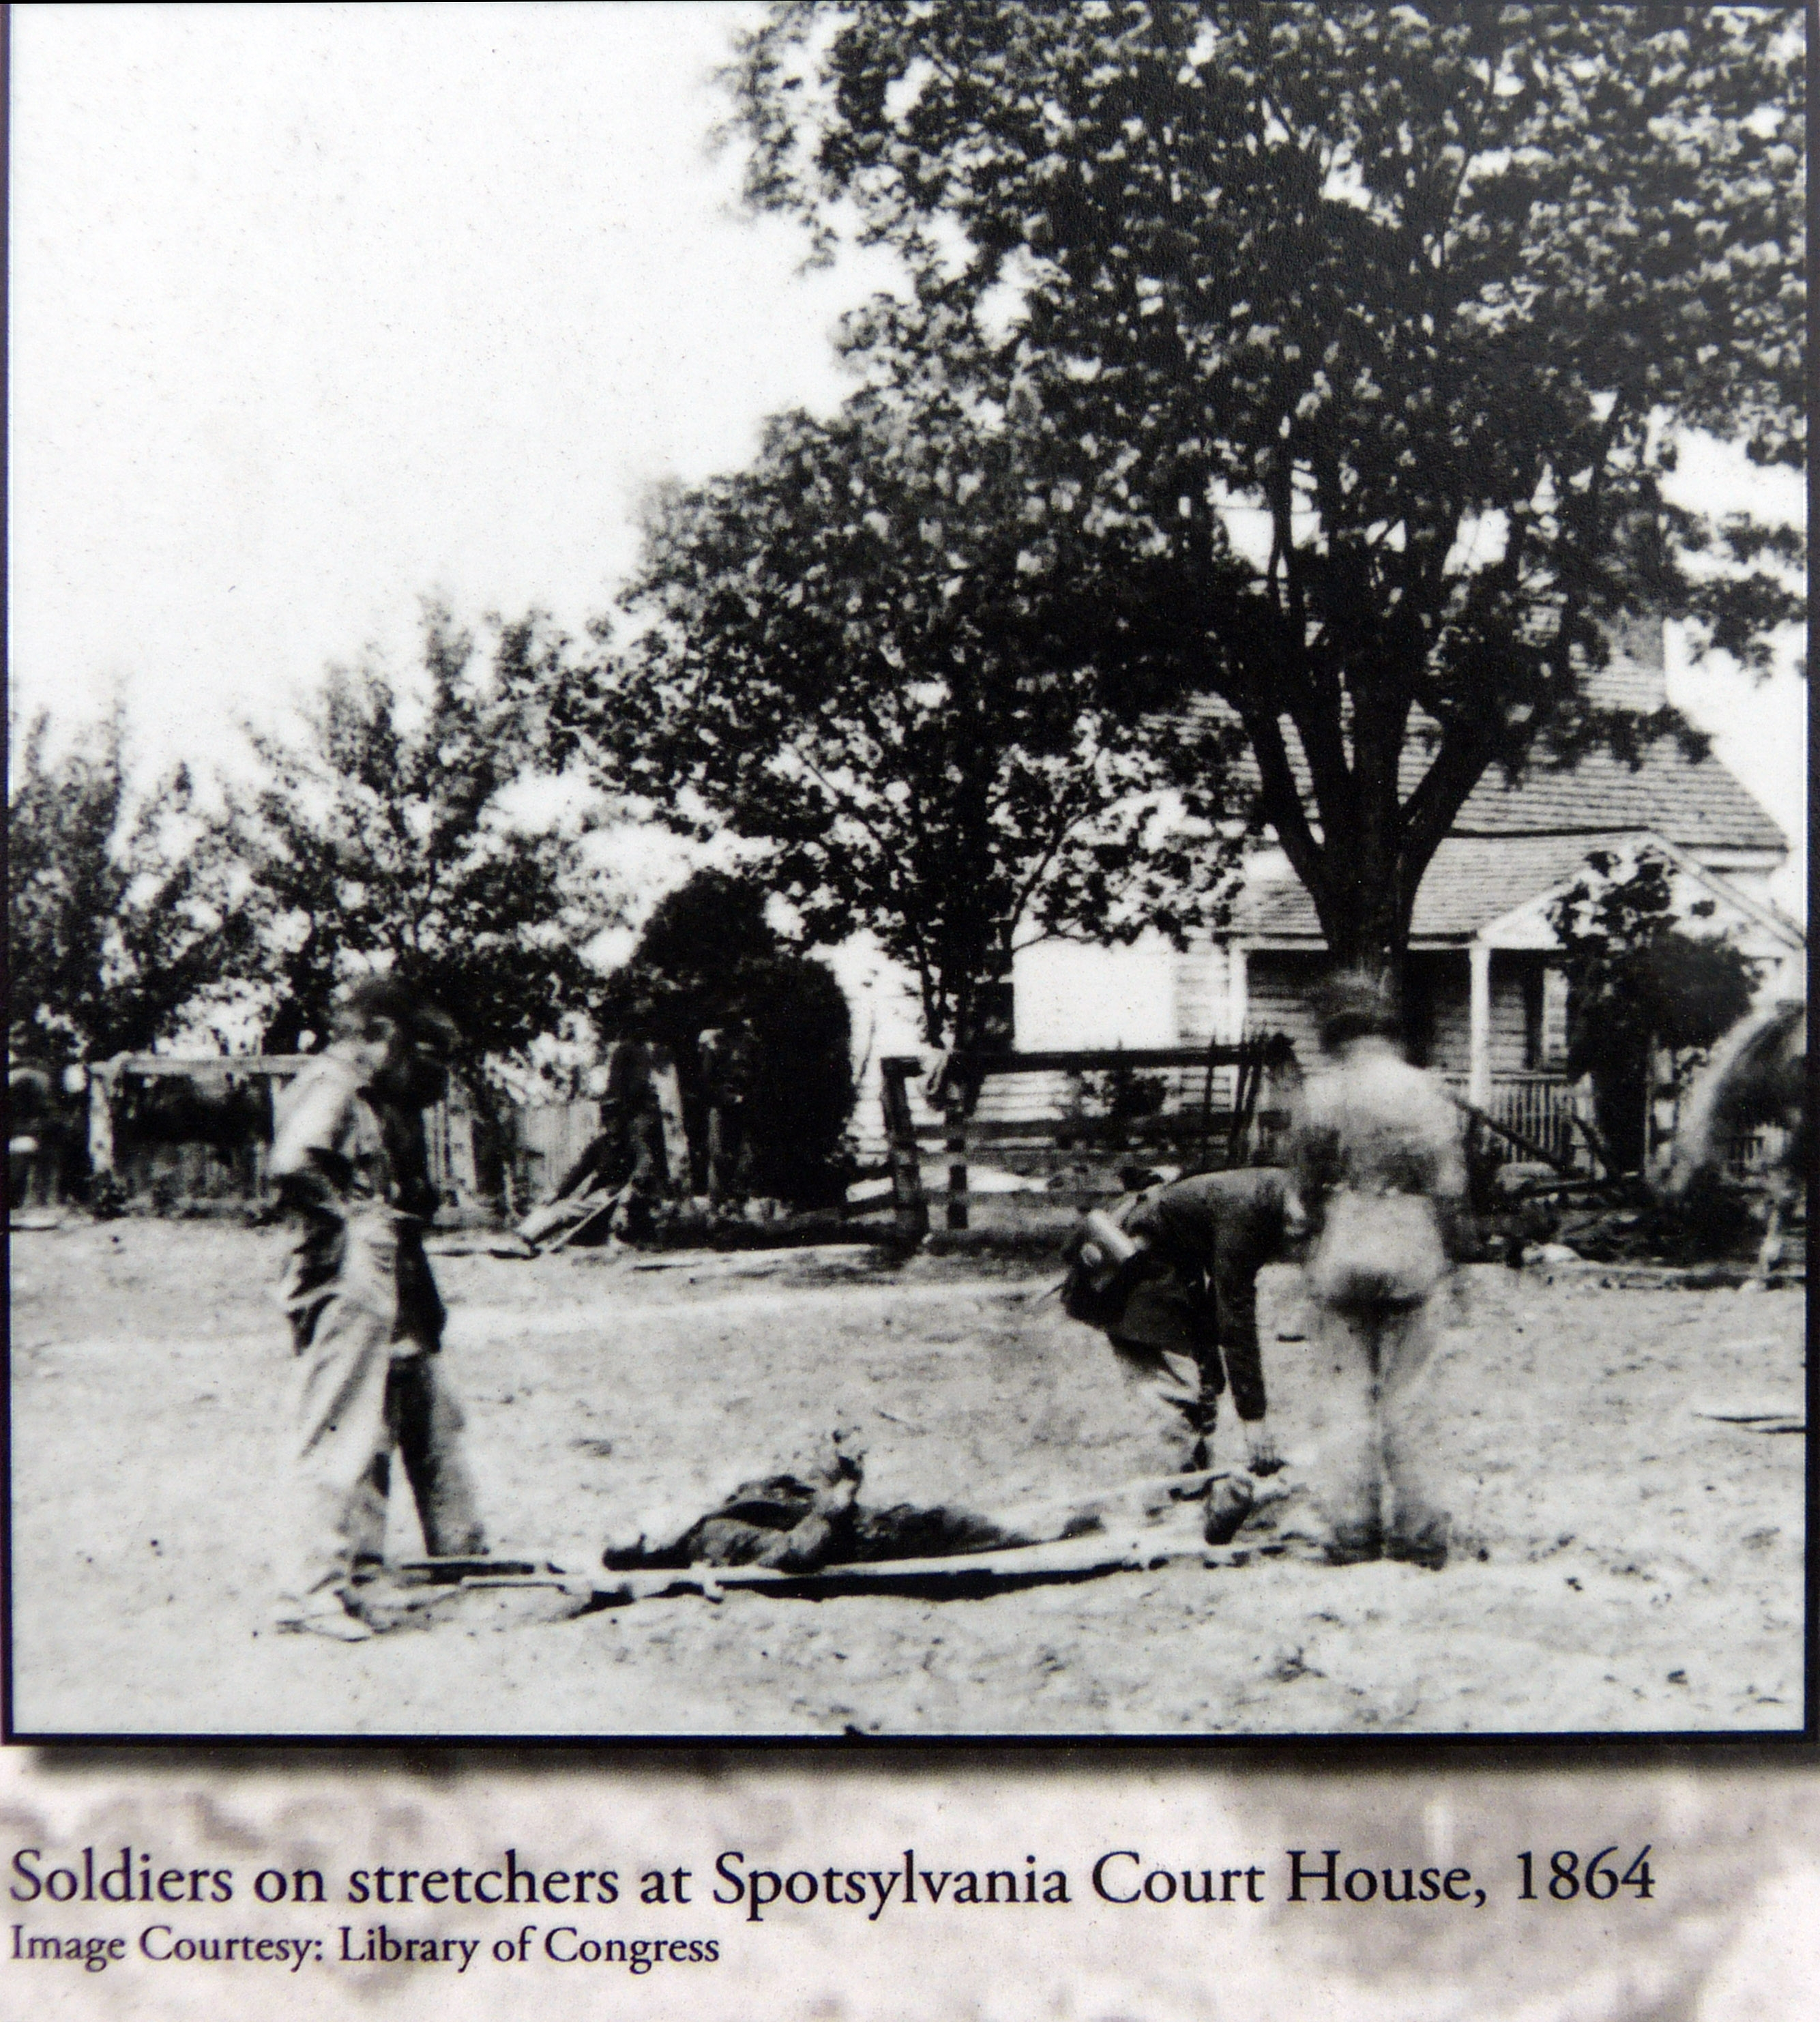 Soldiers on stretchers at Spotsylvania Court House, 1864